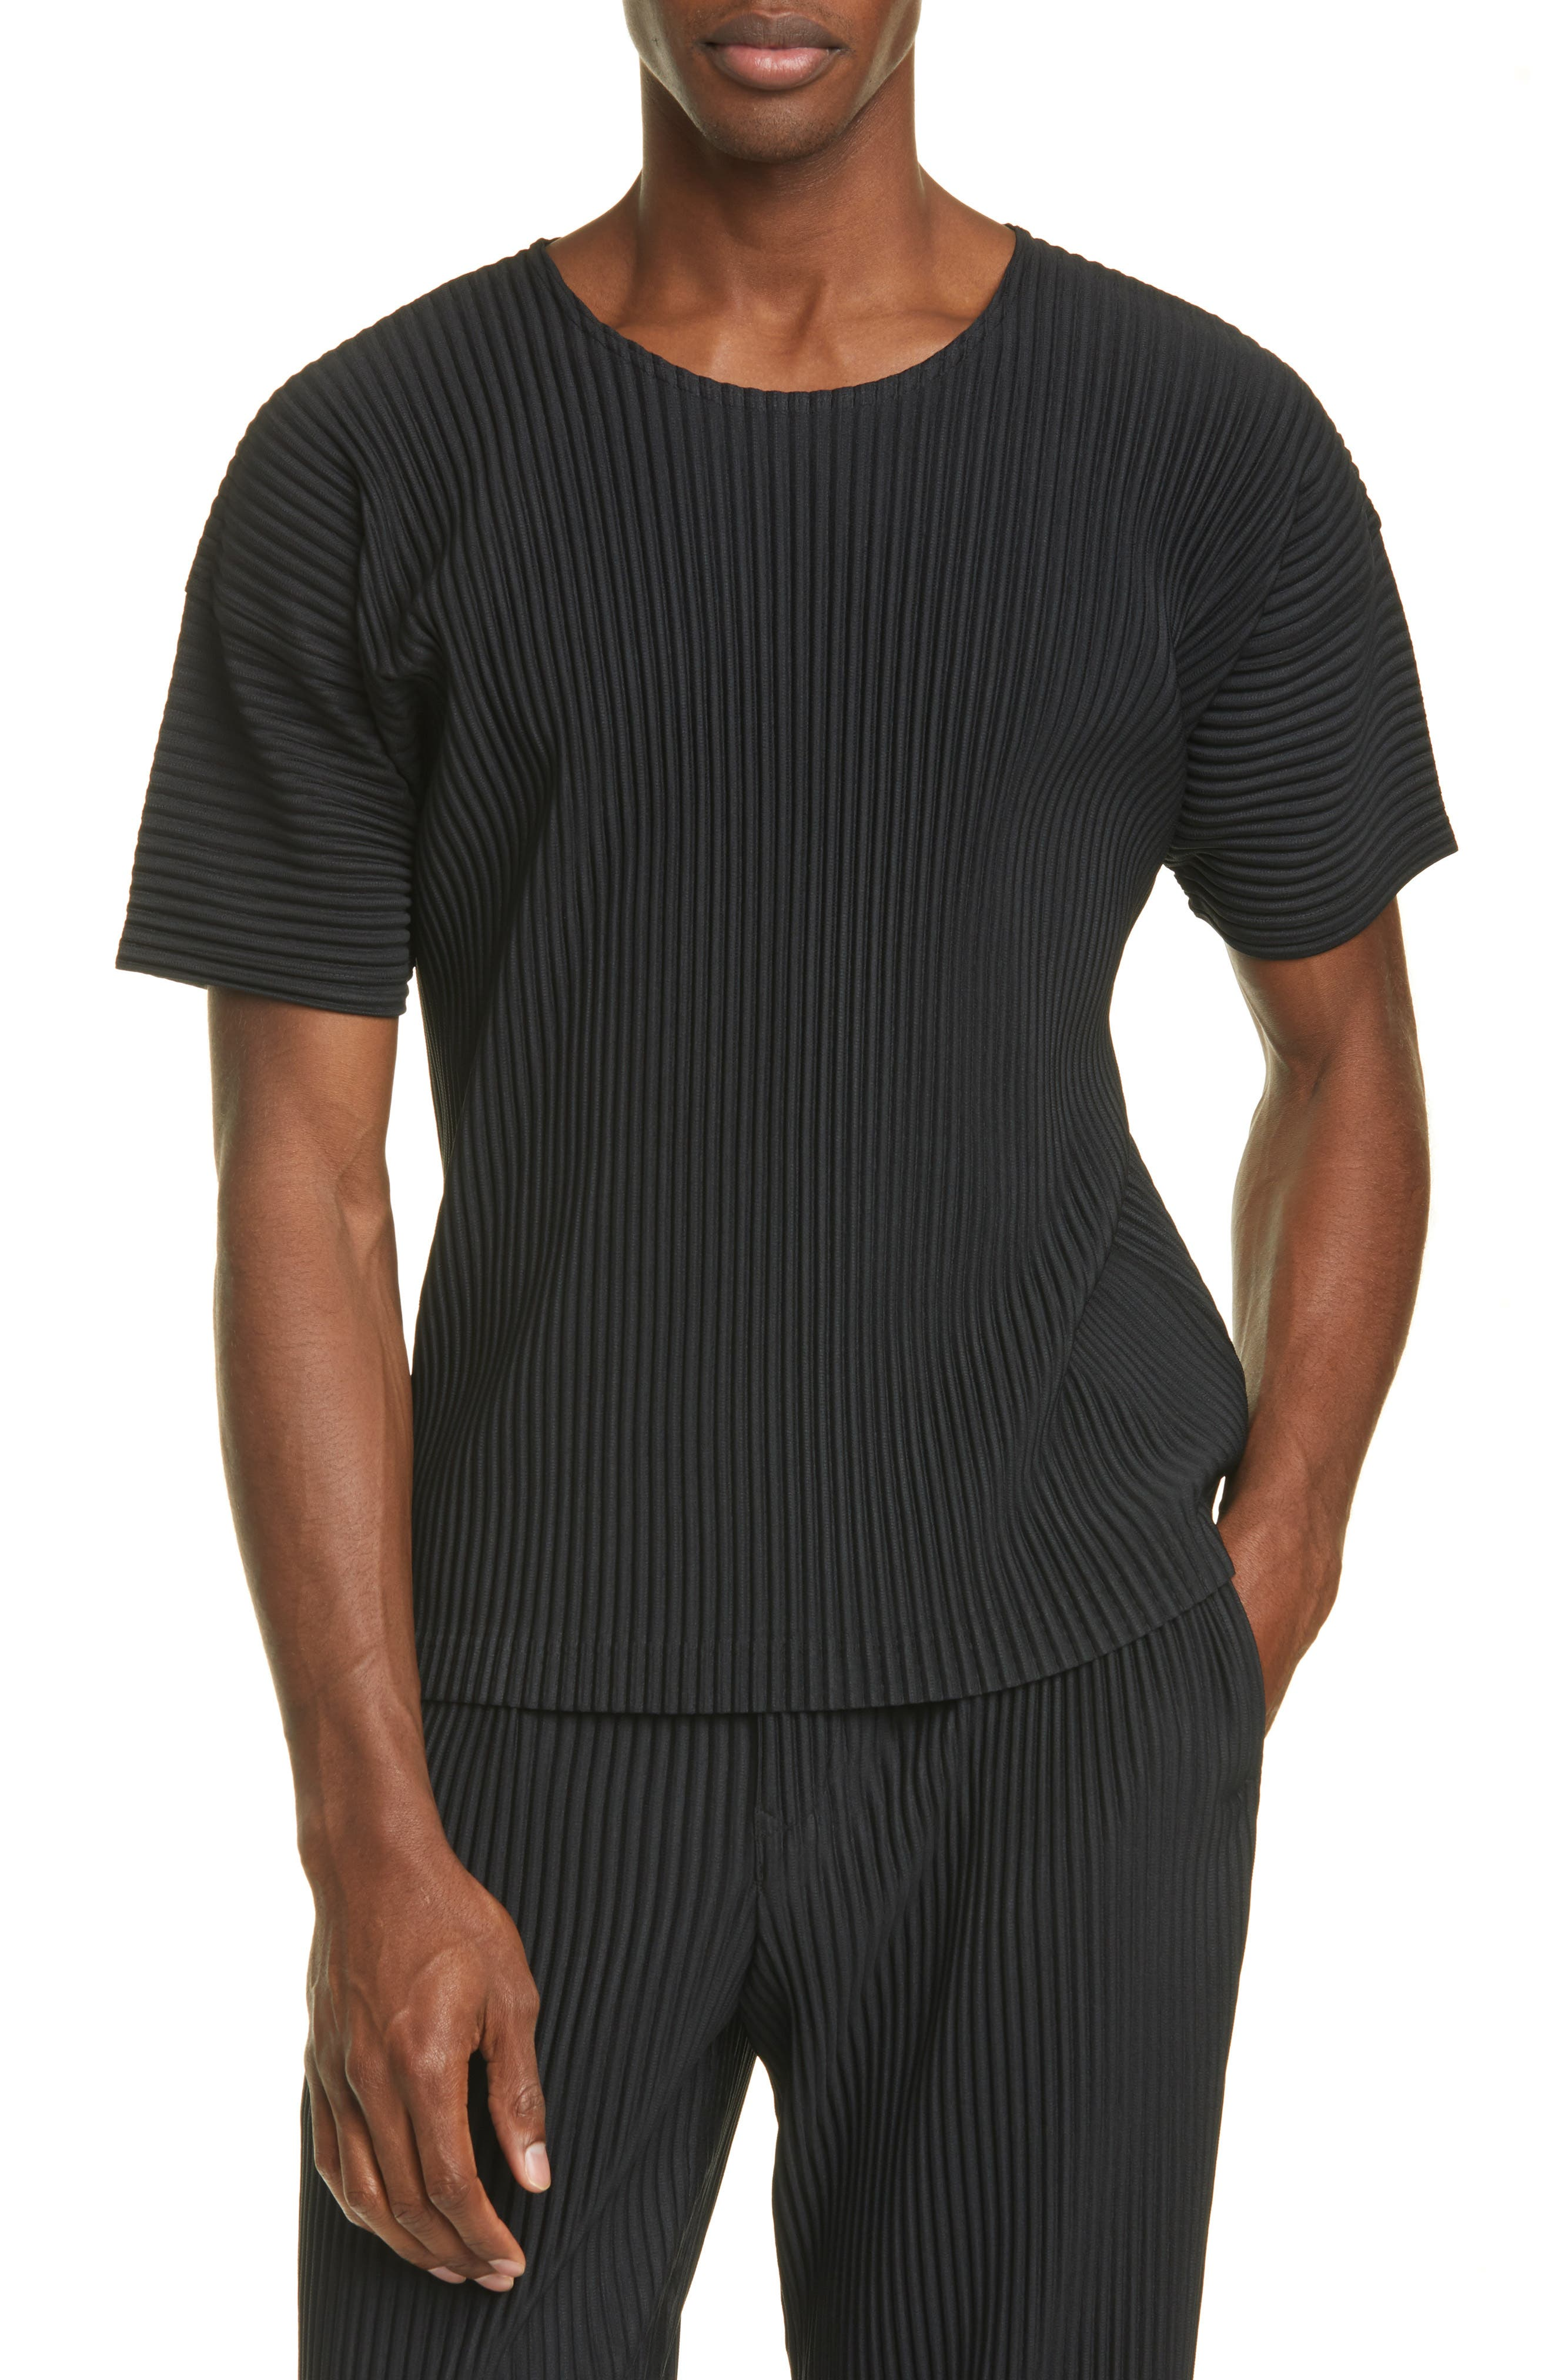 A wrinkle-resistant, quick-drying T-shirt is sewn using Issey Miyake\'s unique pleating technique for a look that\'s both fashion-forward and travel-ready. Style Name: Homme Plisse Issey Miyake Pleated T-Shirt. Style Number: 6006867. Available in stores.